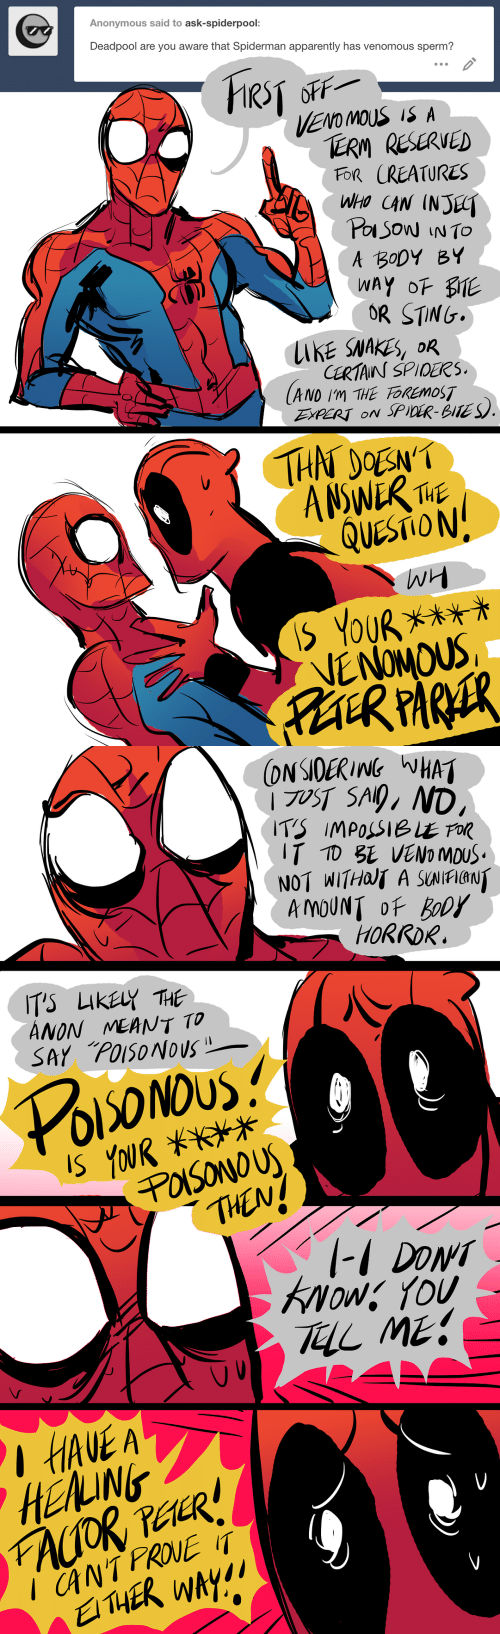 thn: Anonymous said to ask-spiderpool:  Deadpool are you aware that Spiderman apparently has venomous sperm?  VENO MOUS IS A  TERM RESERVED  FOR CREATURES  A BoDYBY  OR STING  CERTAINS SPIOEKS  LAKE SNAKES, DR  AND Im THE FOREMOST  EXPERT oN SPiDR-BITES  THN DOEN'  QUESTION:   NOT WITHOIT A SUNIFIANT  HORROR.  ANON MEANT TO  THENz